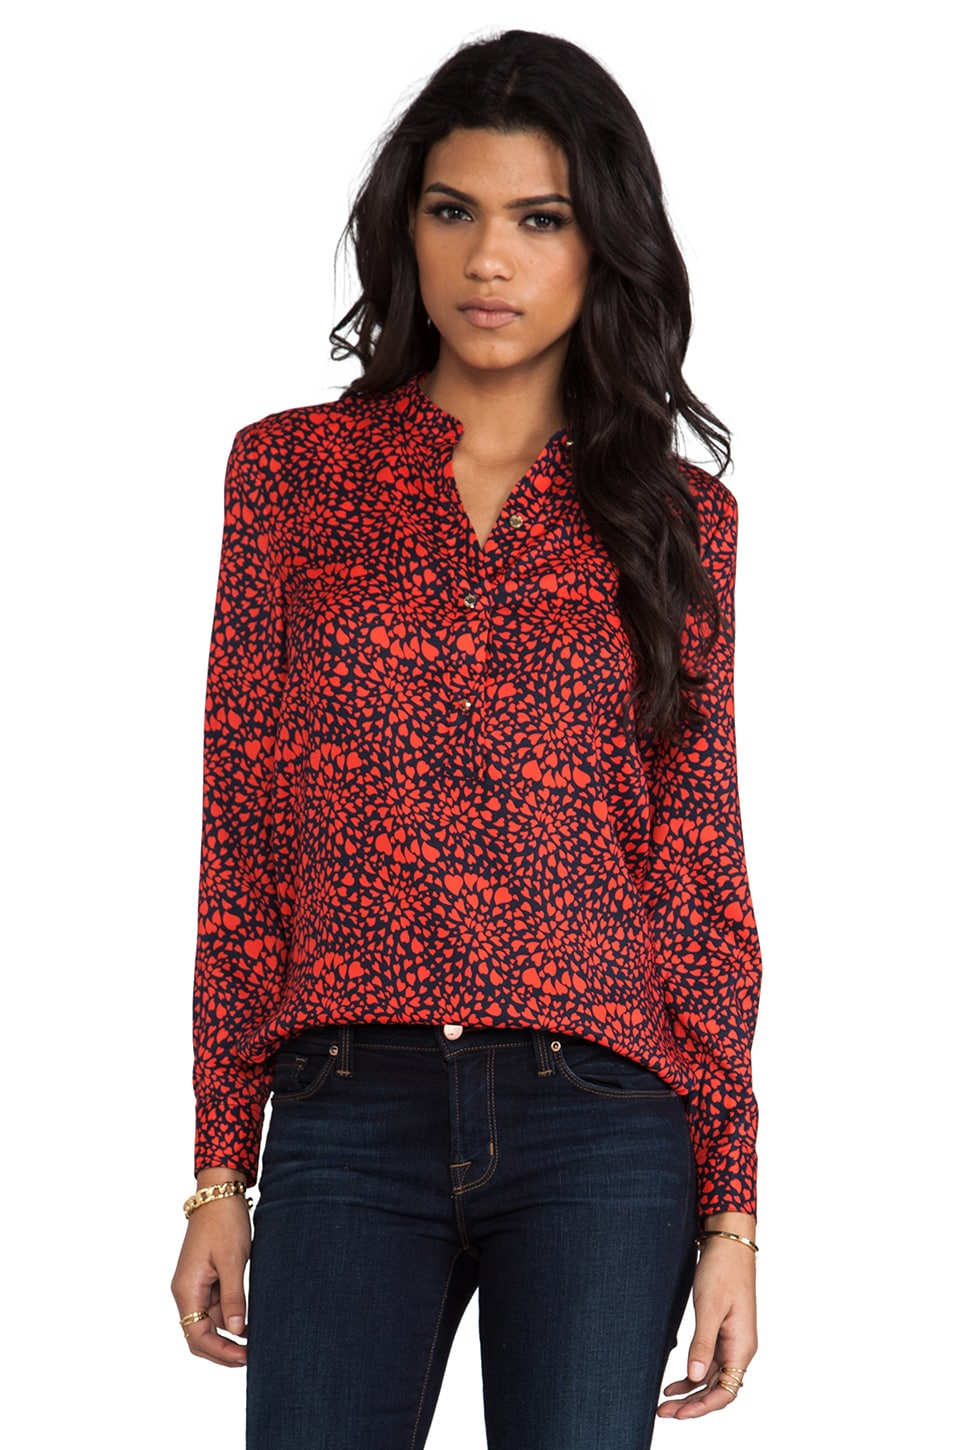 Juicy Couture Printed Satin Shirt in Regal Heart